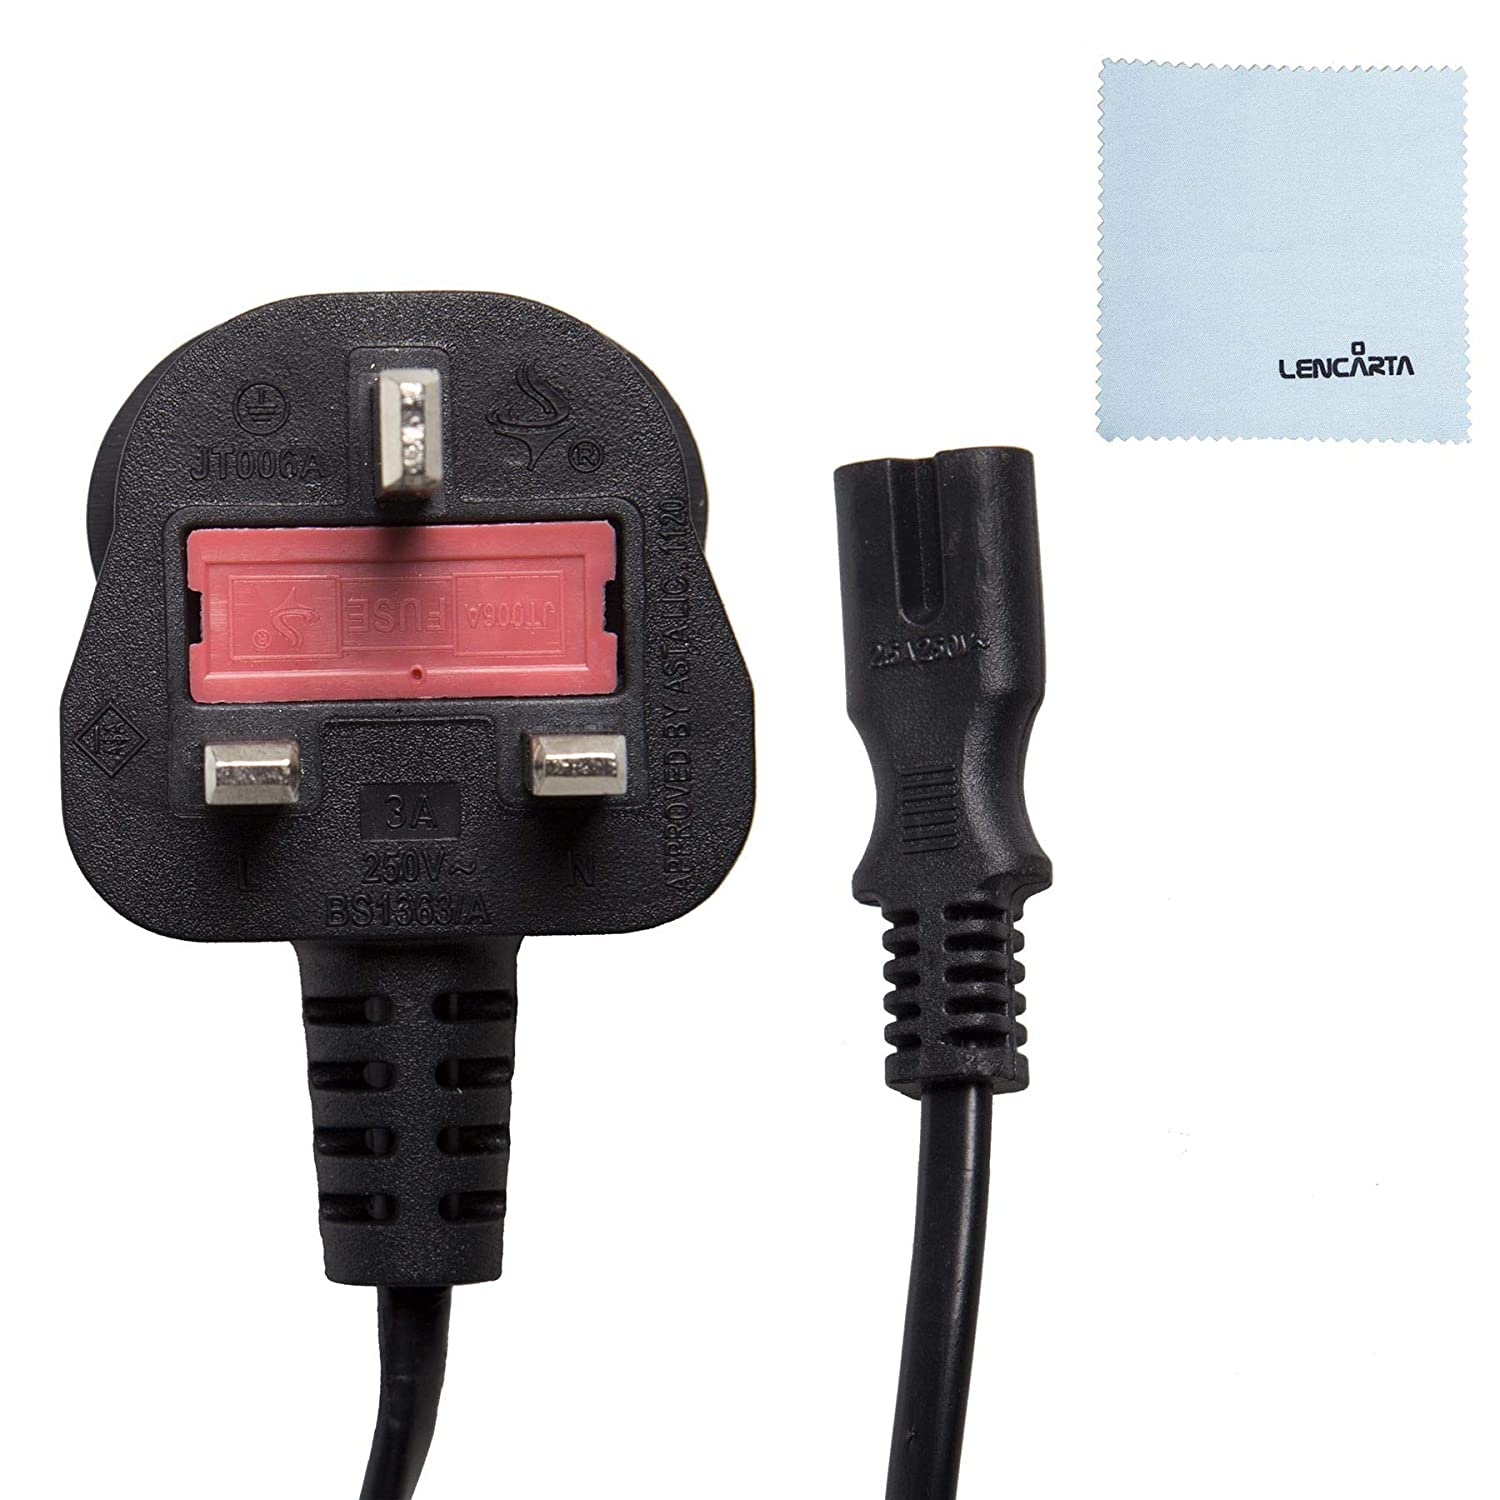 2 Prong 2 Pin AC Power Cord Cable Charge Adapter PC Laptop PS2 PS3 PS4 5 ft